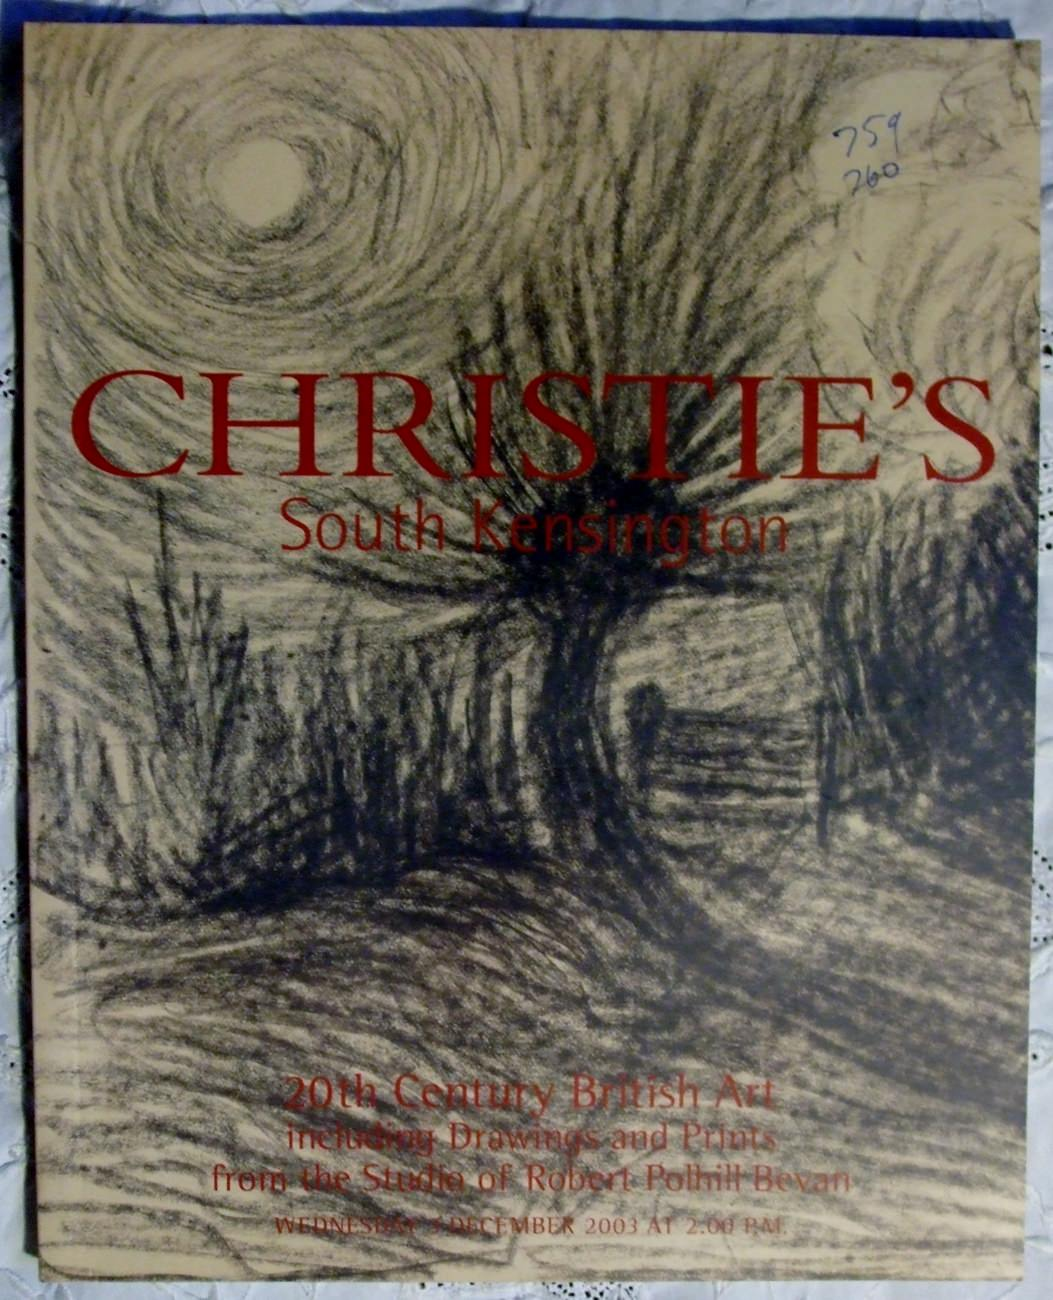 Christies South Kensington 20th Century British Art including Drawings and Prints from the studio of Robert Polhill Bevan 03 December 2003